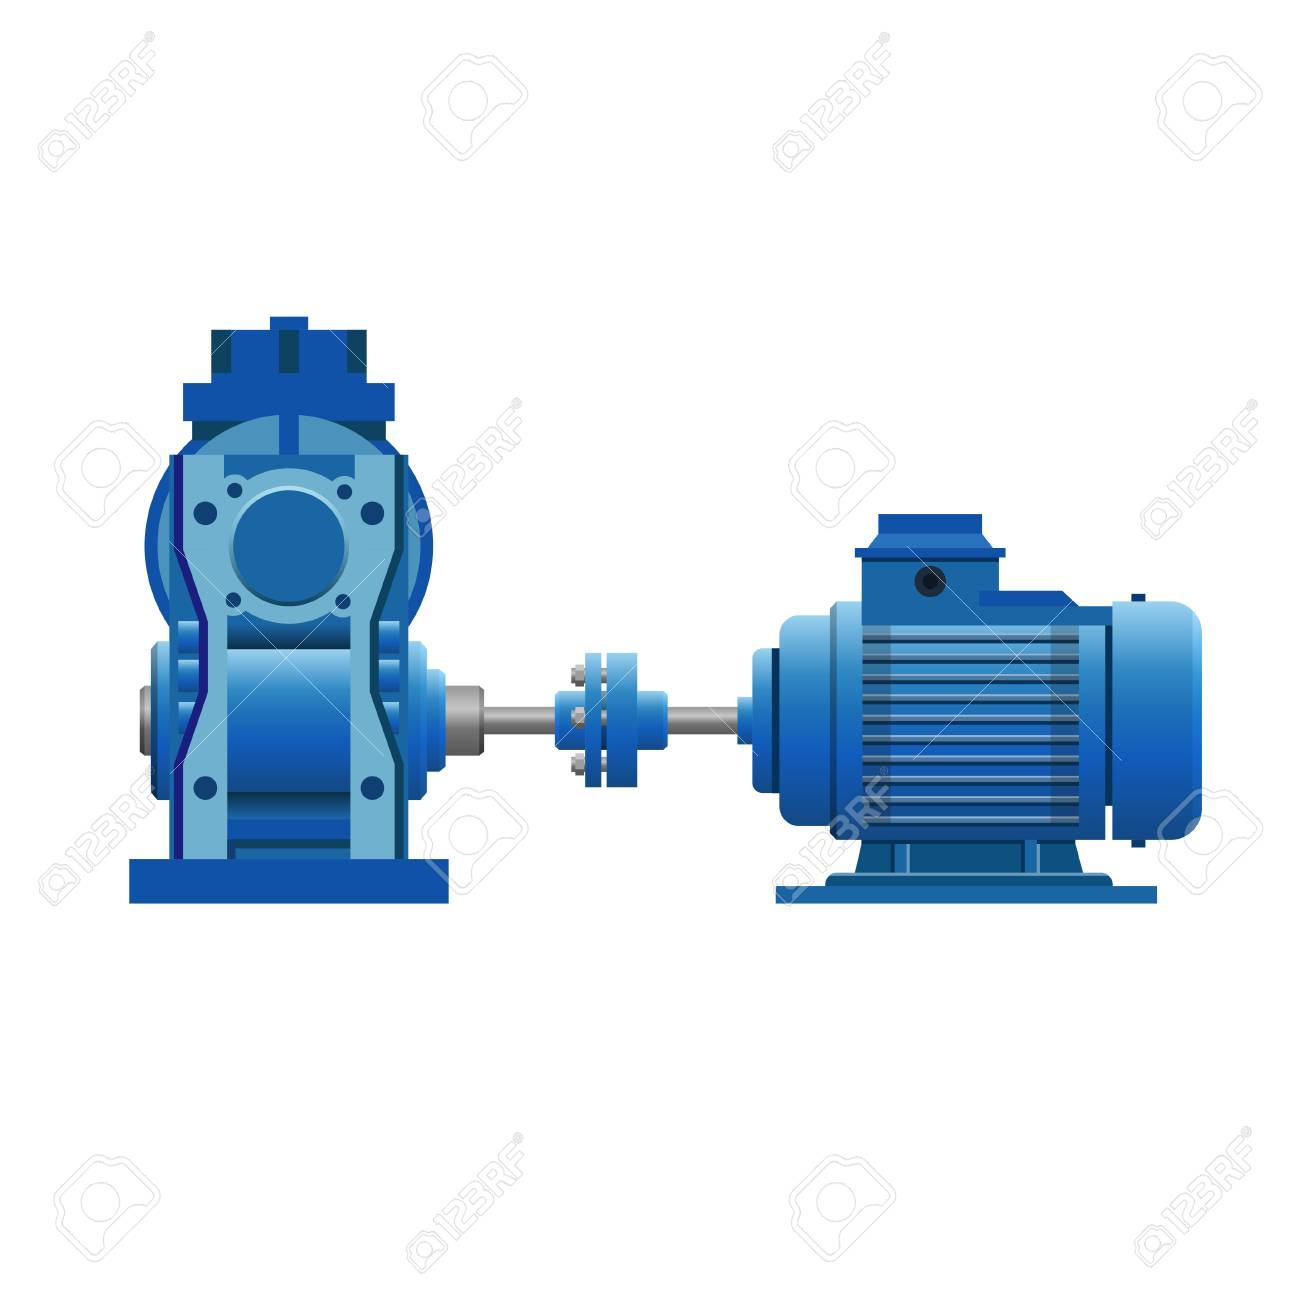 Induction motor with gear set. Vector illustration isolated on white background - 99017547